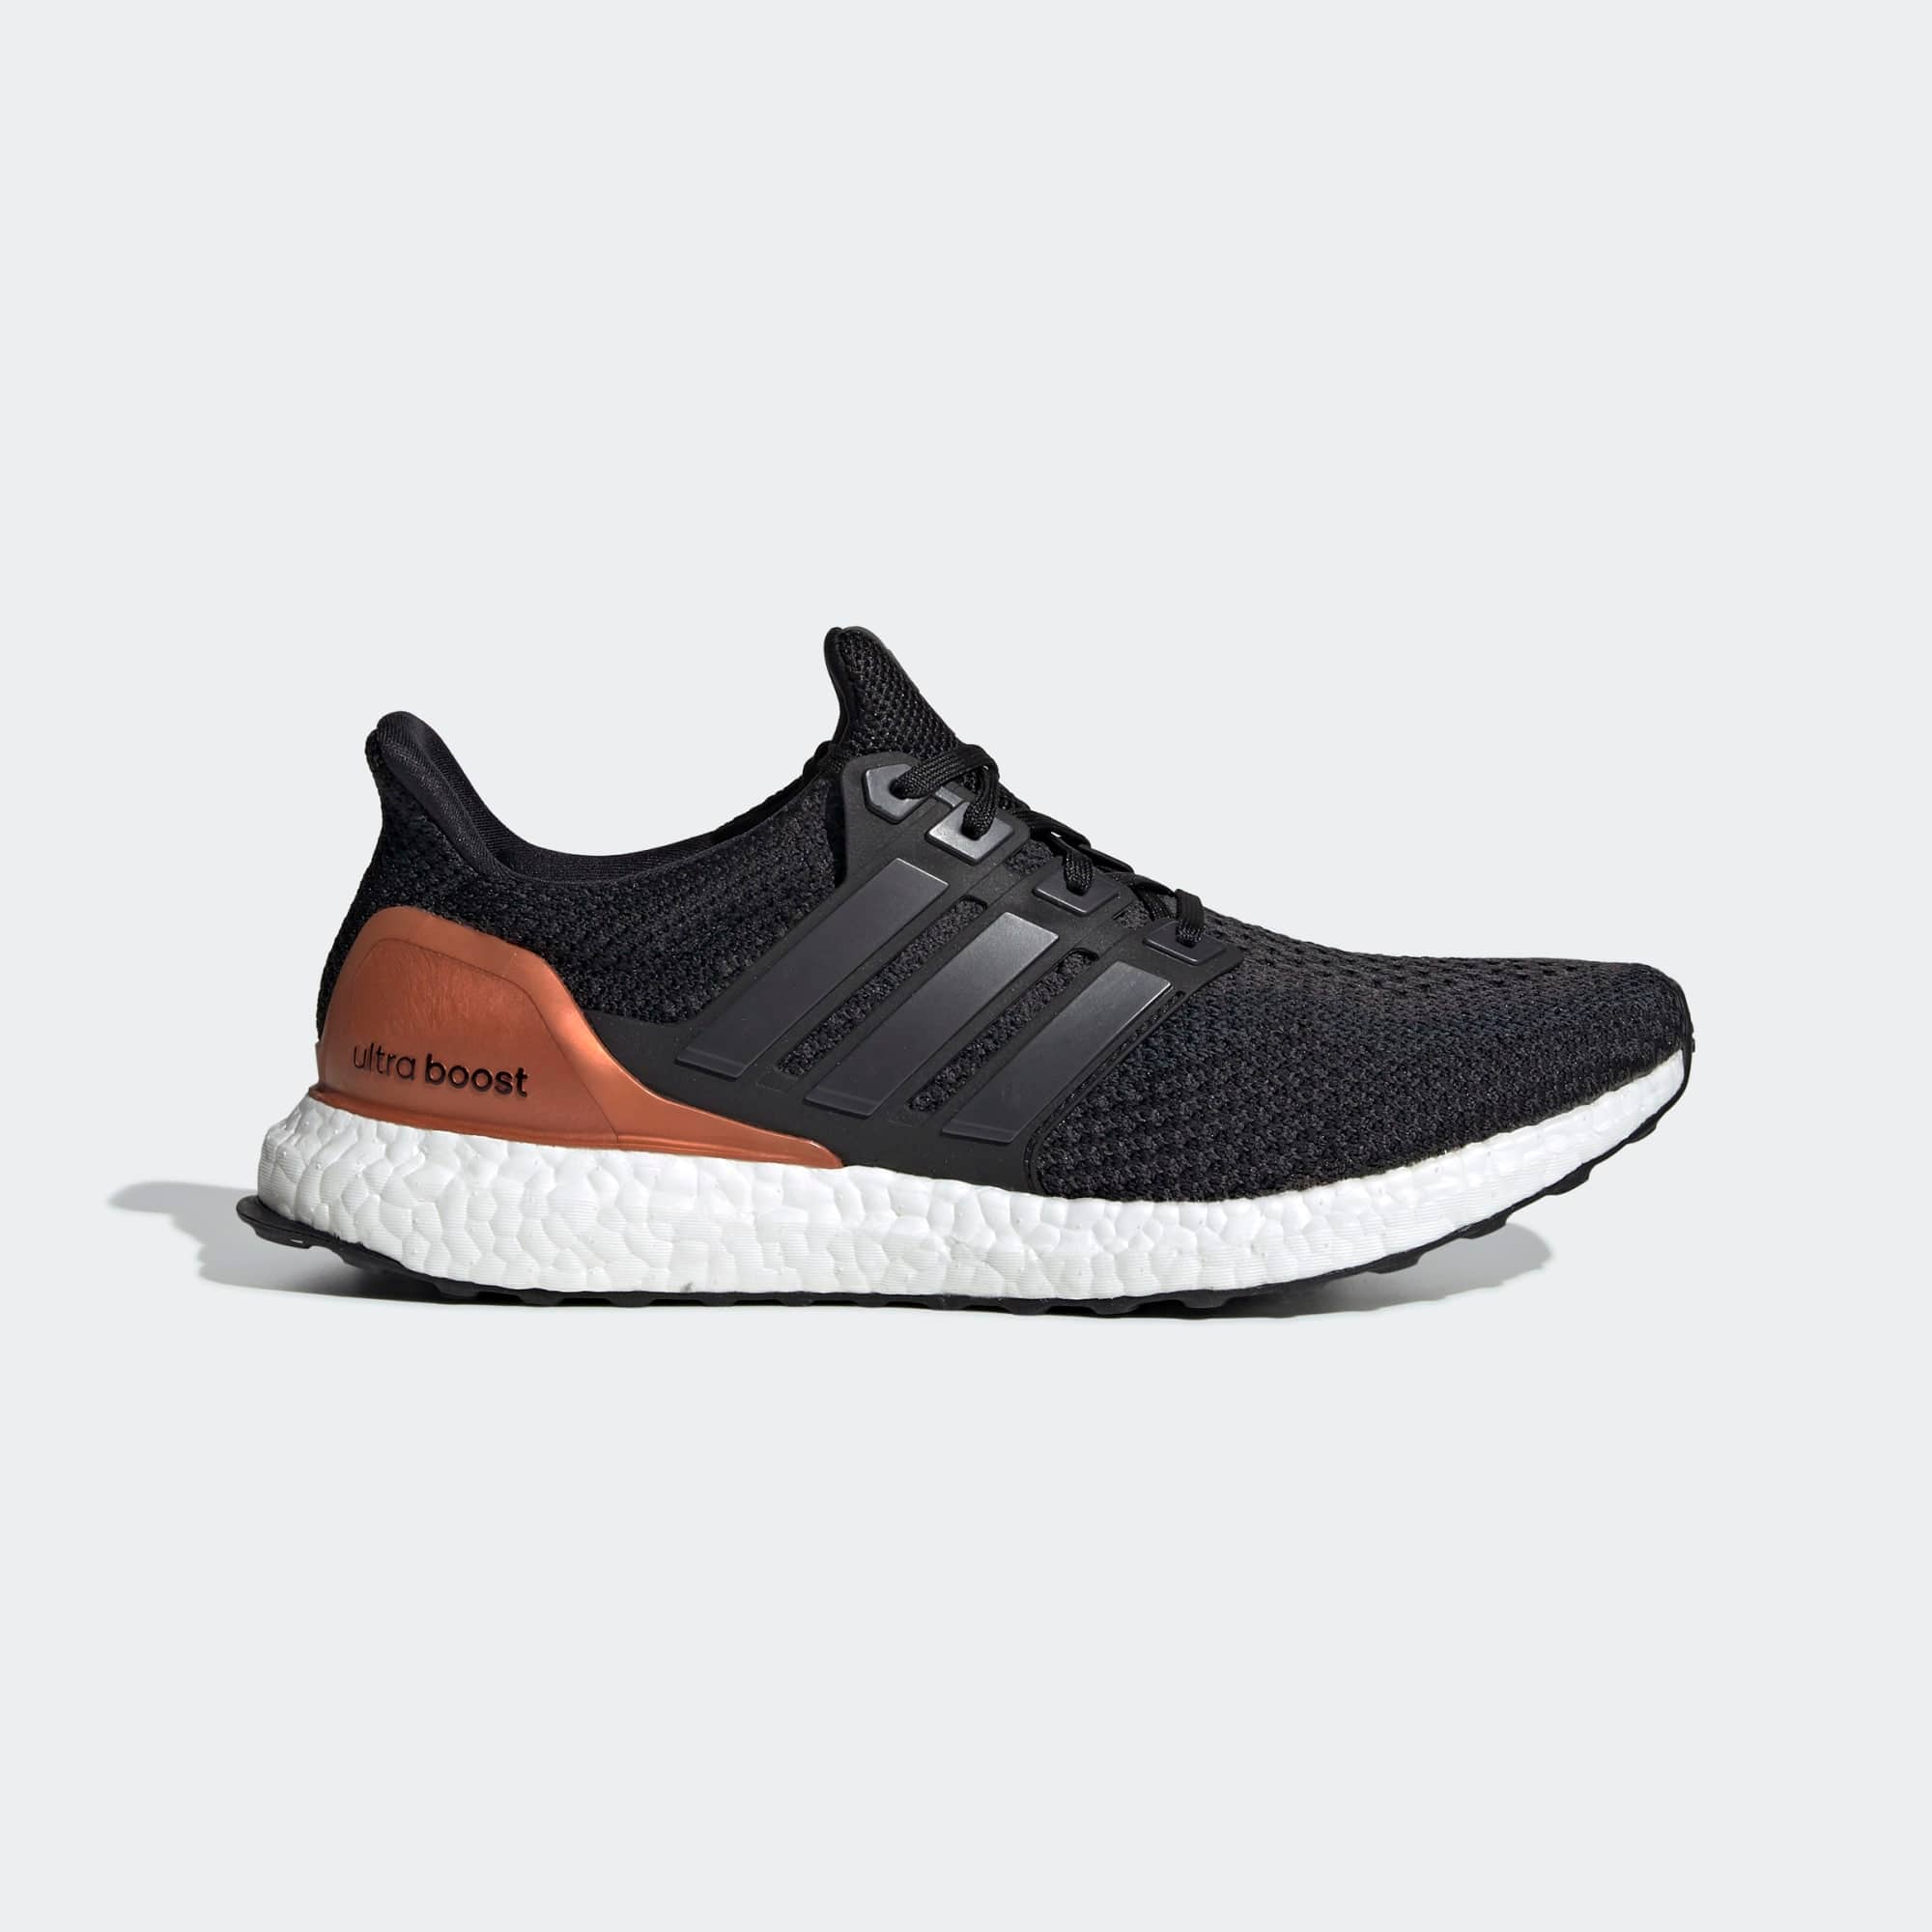 50% off Adidas Ultraboost 2.0 Bronze (Core Black/Core Black/Solid Grey) for $100